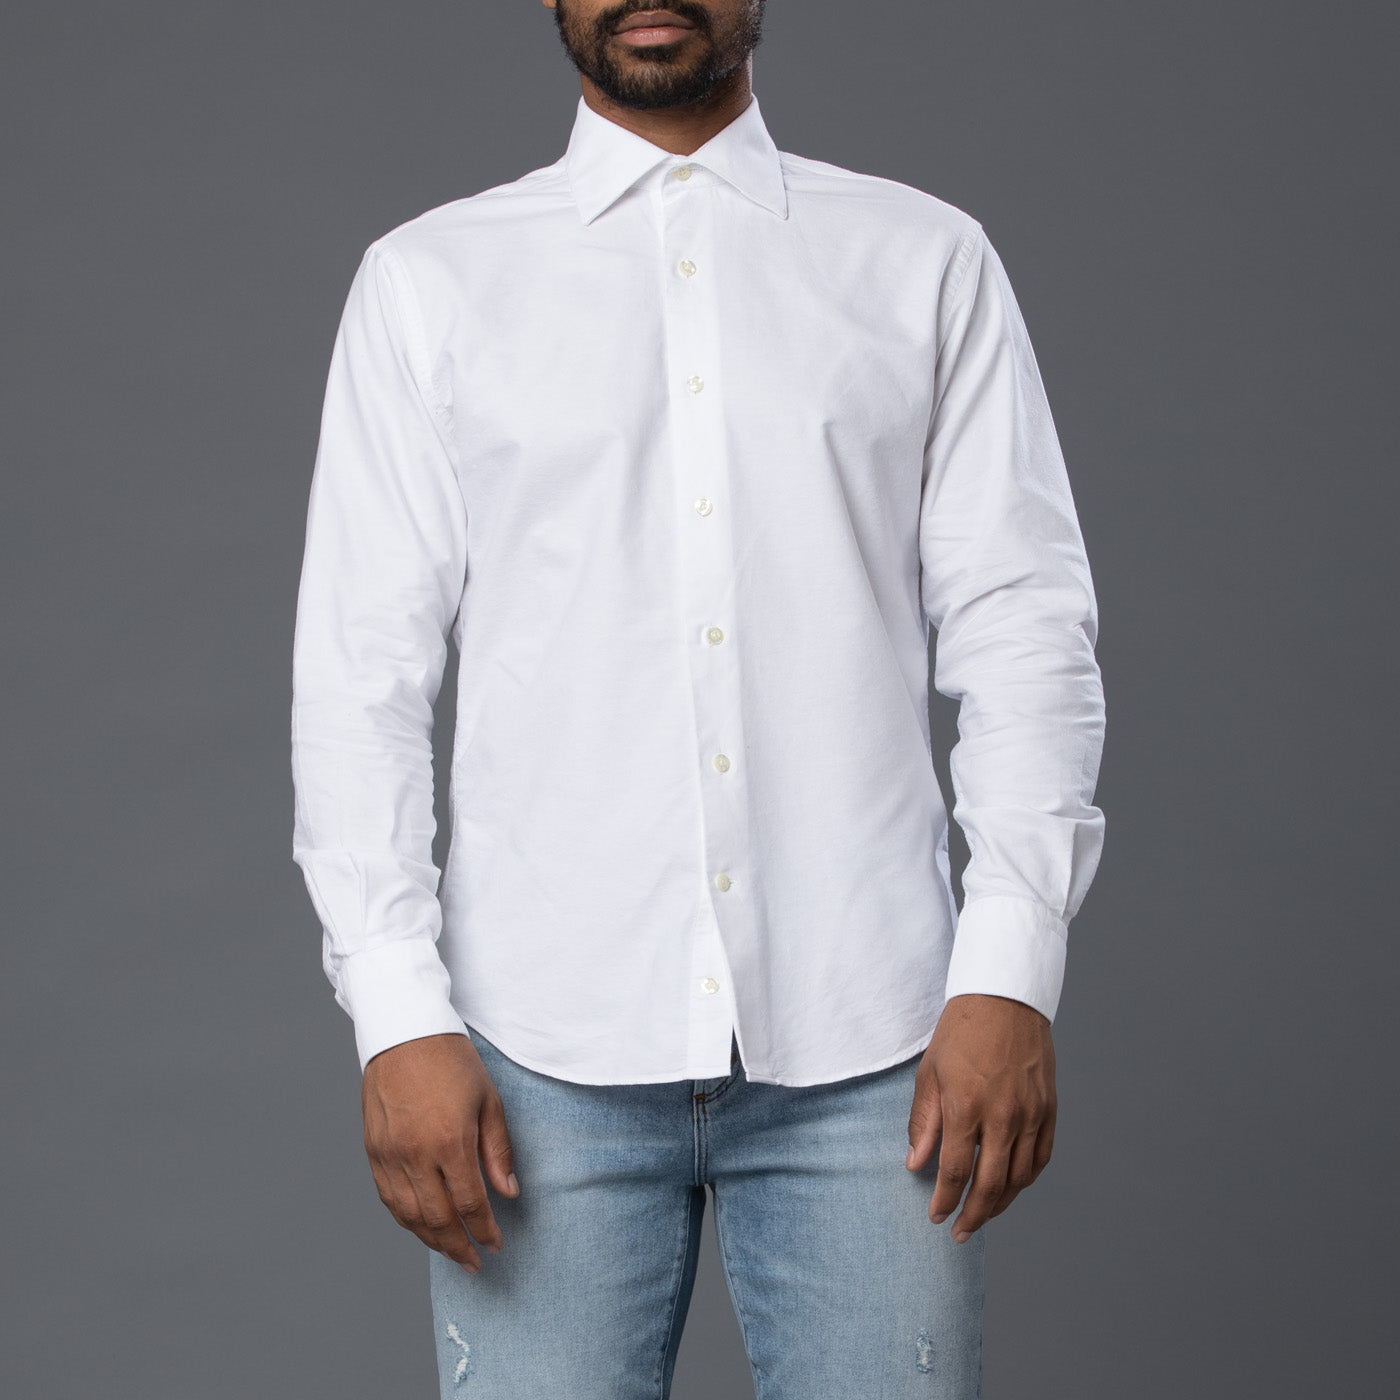 Freemans Sporting Club White Hopkins Oxford Shirt